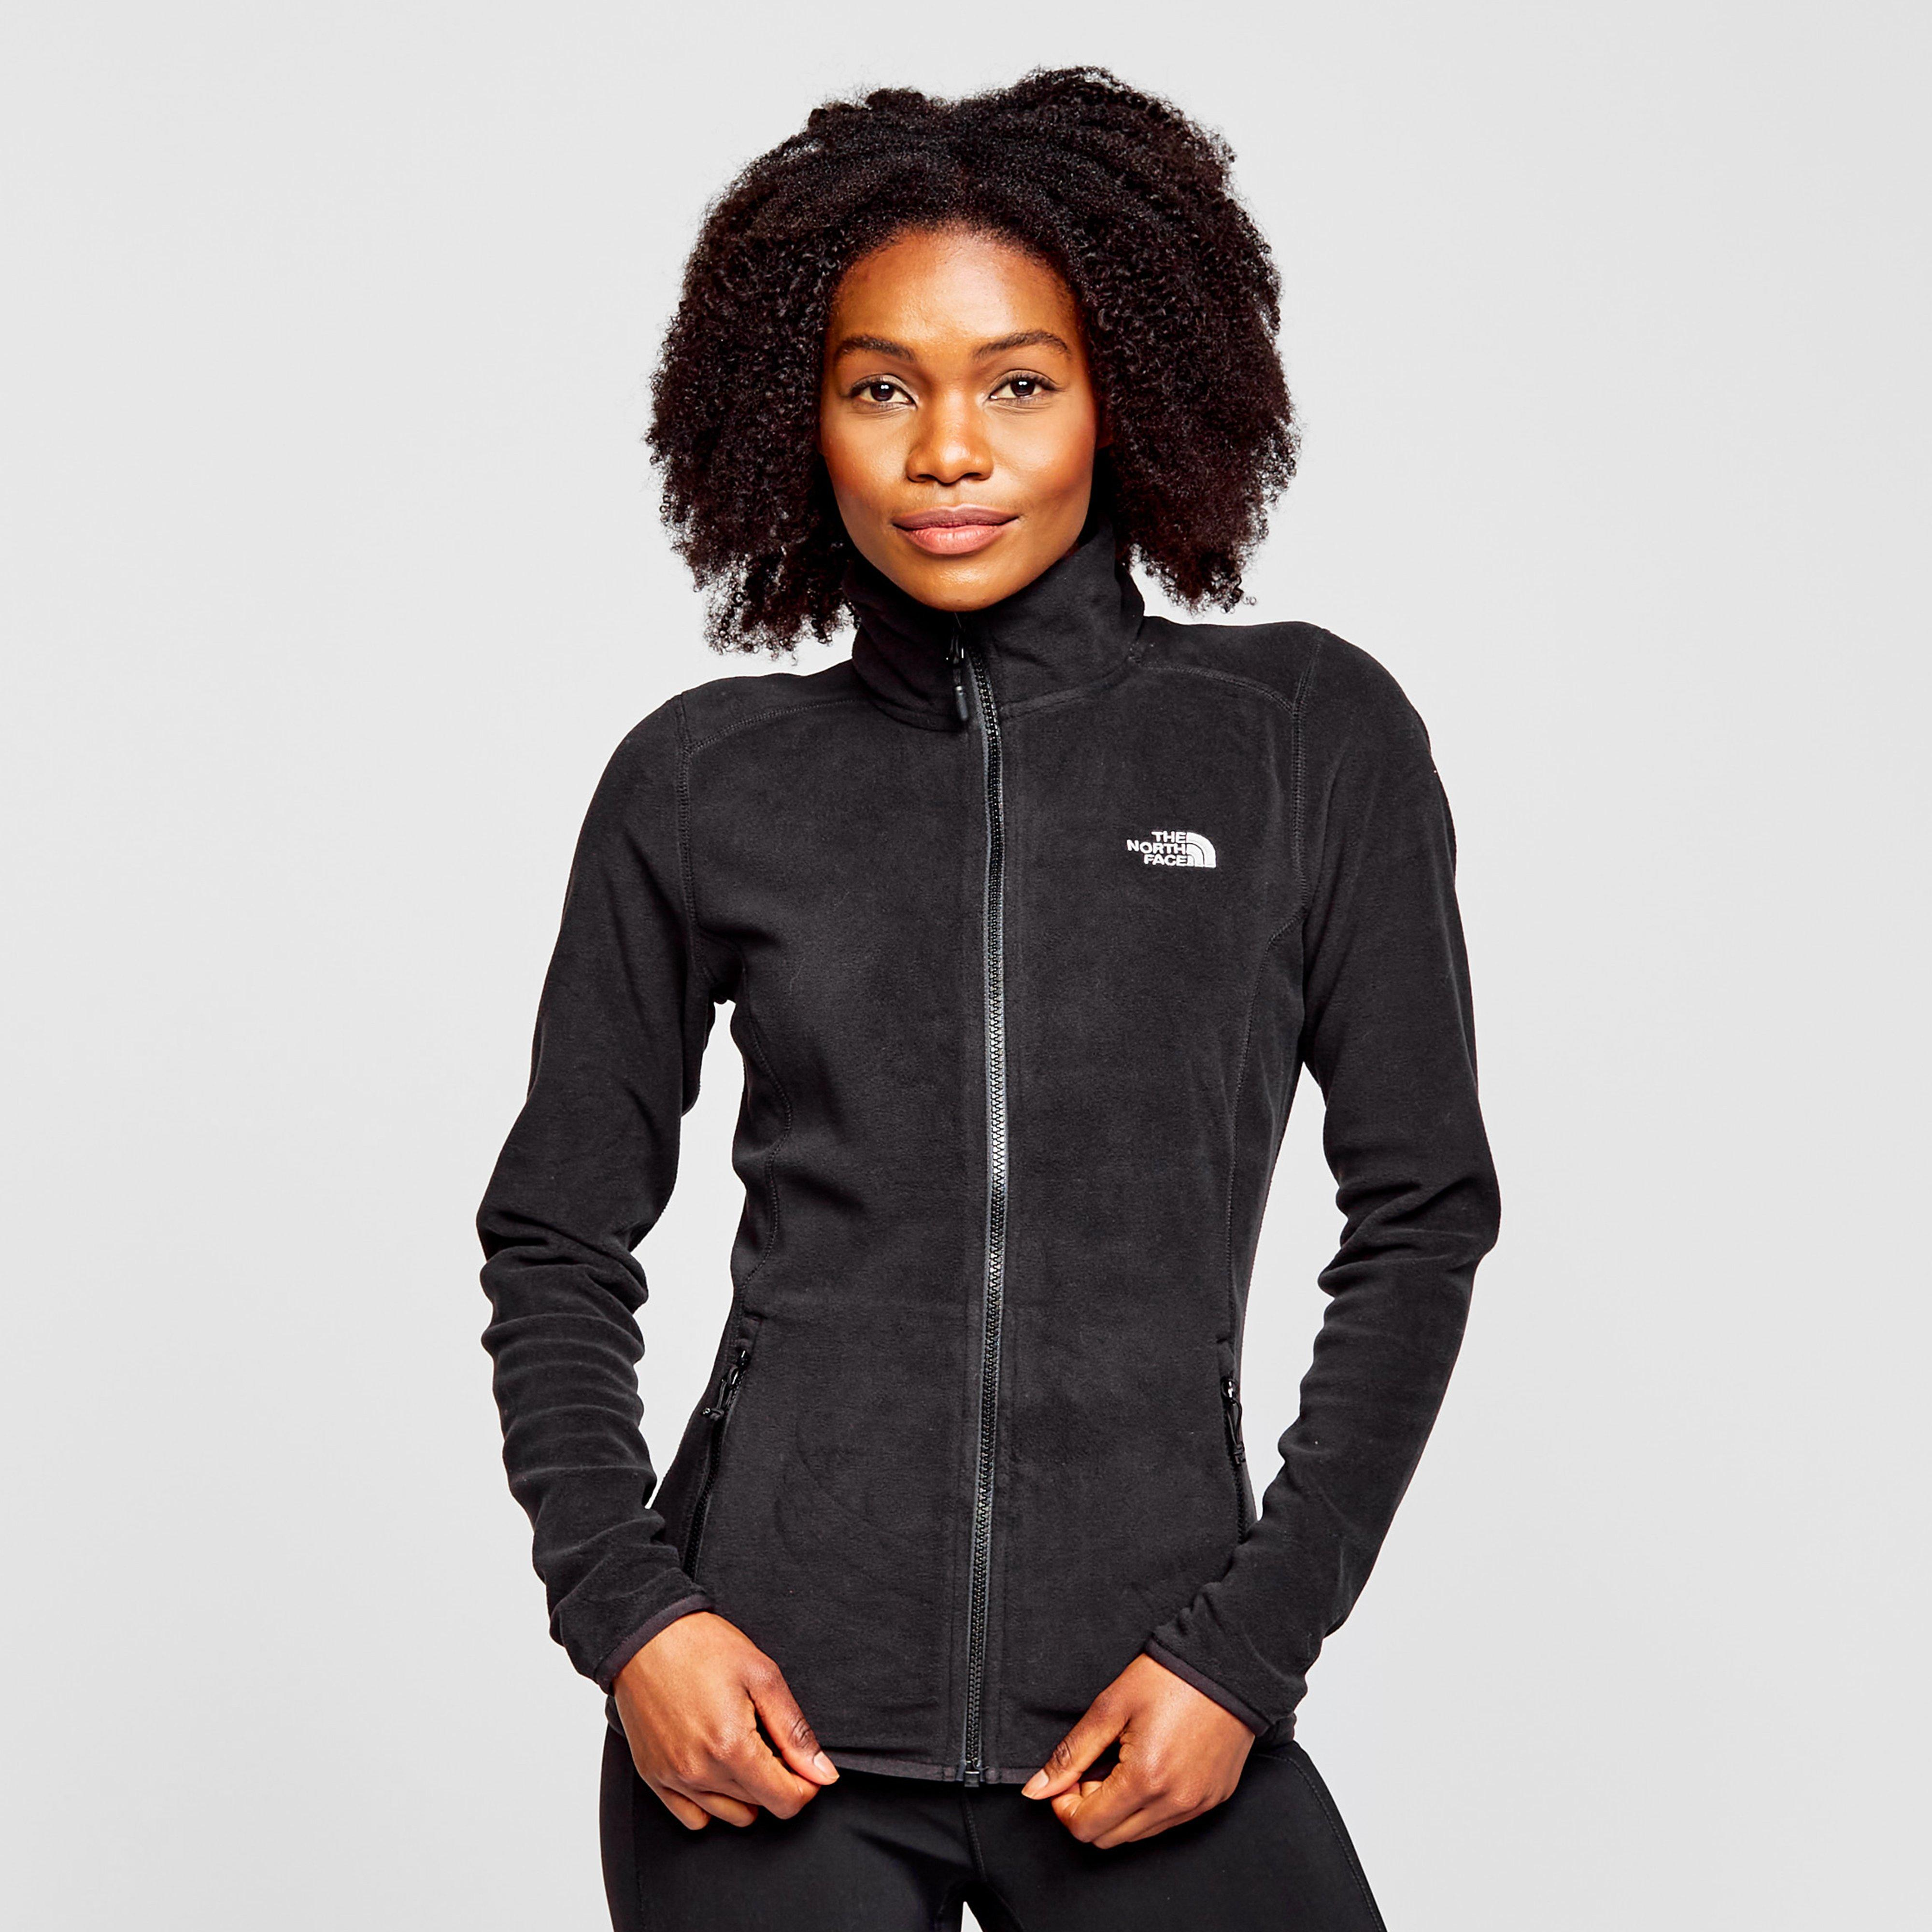 The North Face® Canyon Flats Fleece Jacket makes a great choice for any excursion. It has plenty of built-in stretch for maximum movement and a fleece lining for added warmth. Just add your logo and showcase your brand.